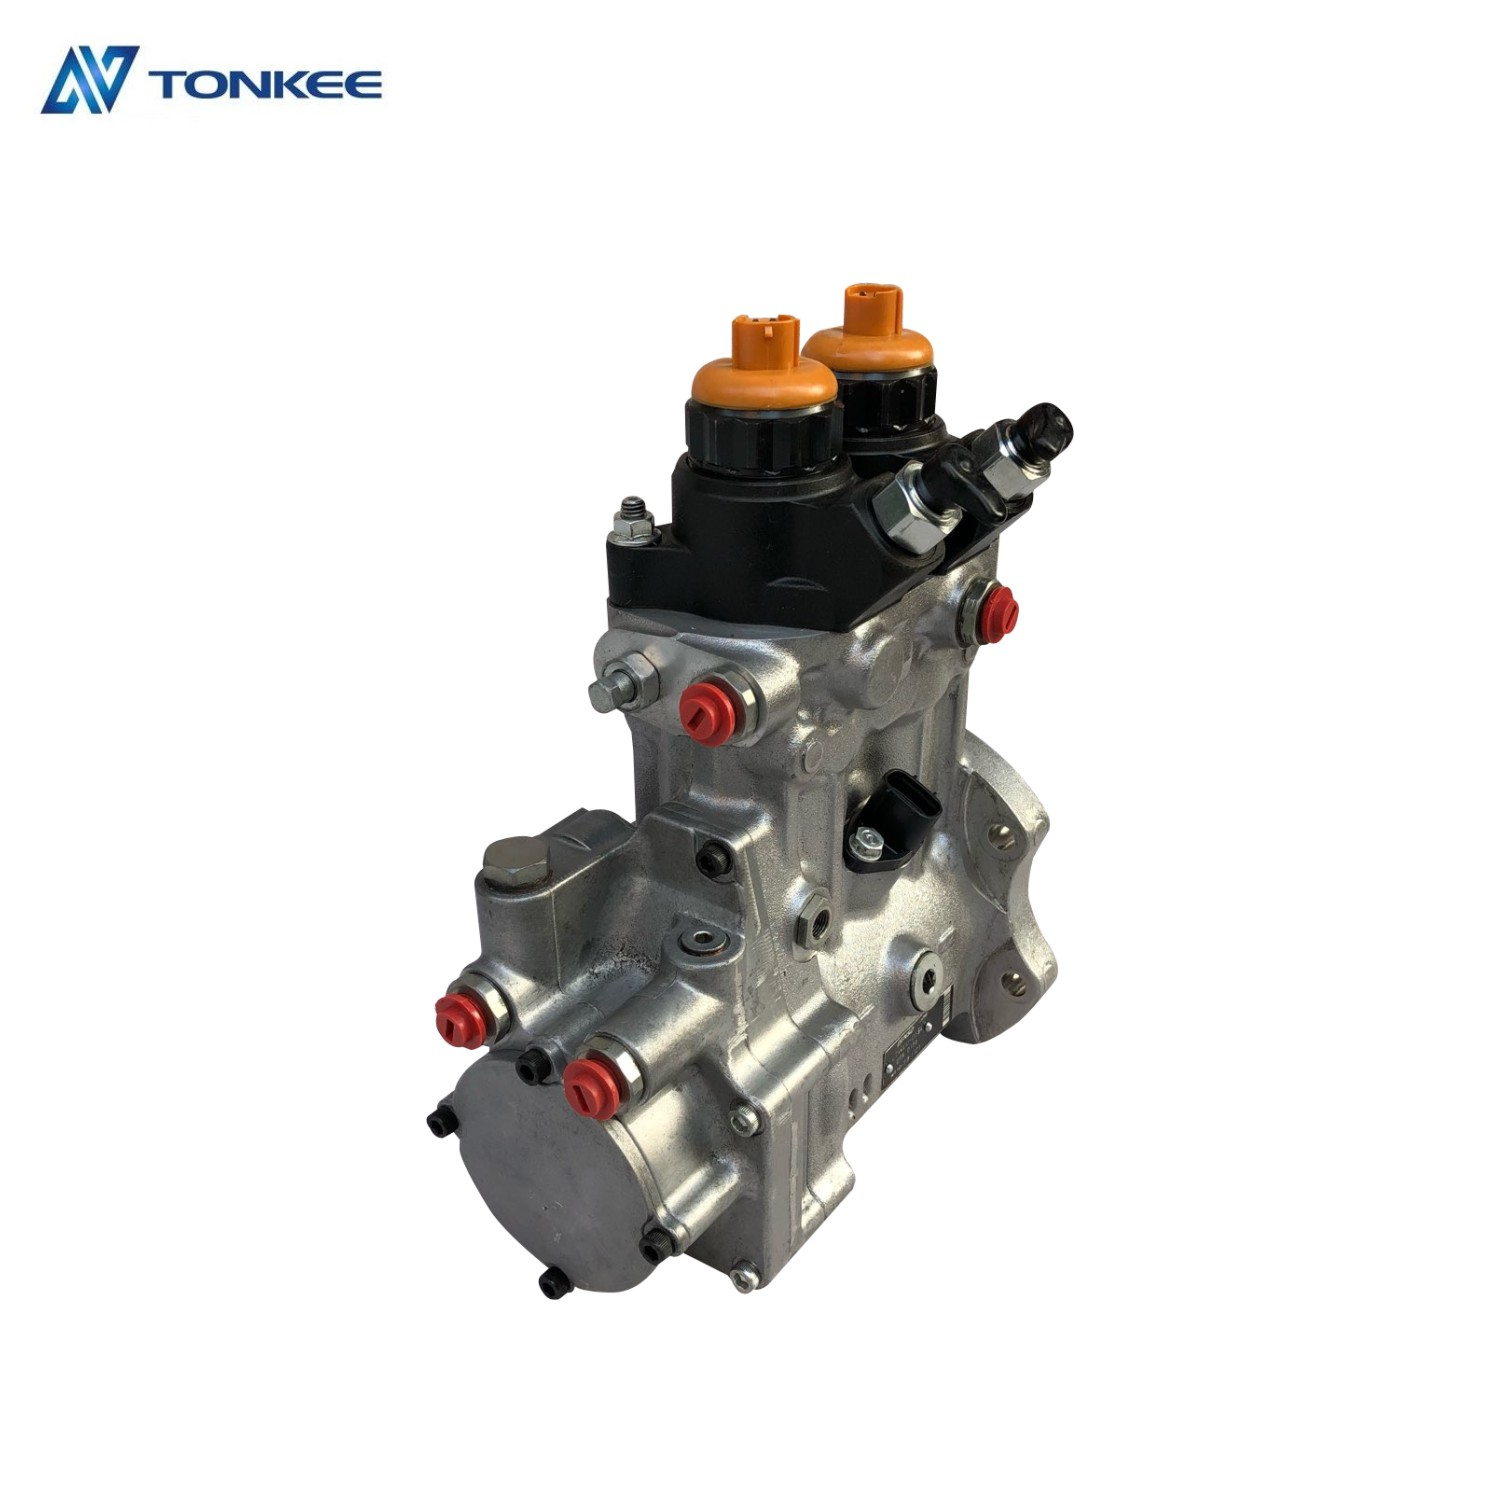 6219-71-1111 6219-71-1110 6219-71-1121 6219-71-1101 6219-71-1201 fuel supply pump PC2000-8  WA800-3 SAA12V140E-3E SAA12V140 fuel injection pump for excavation